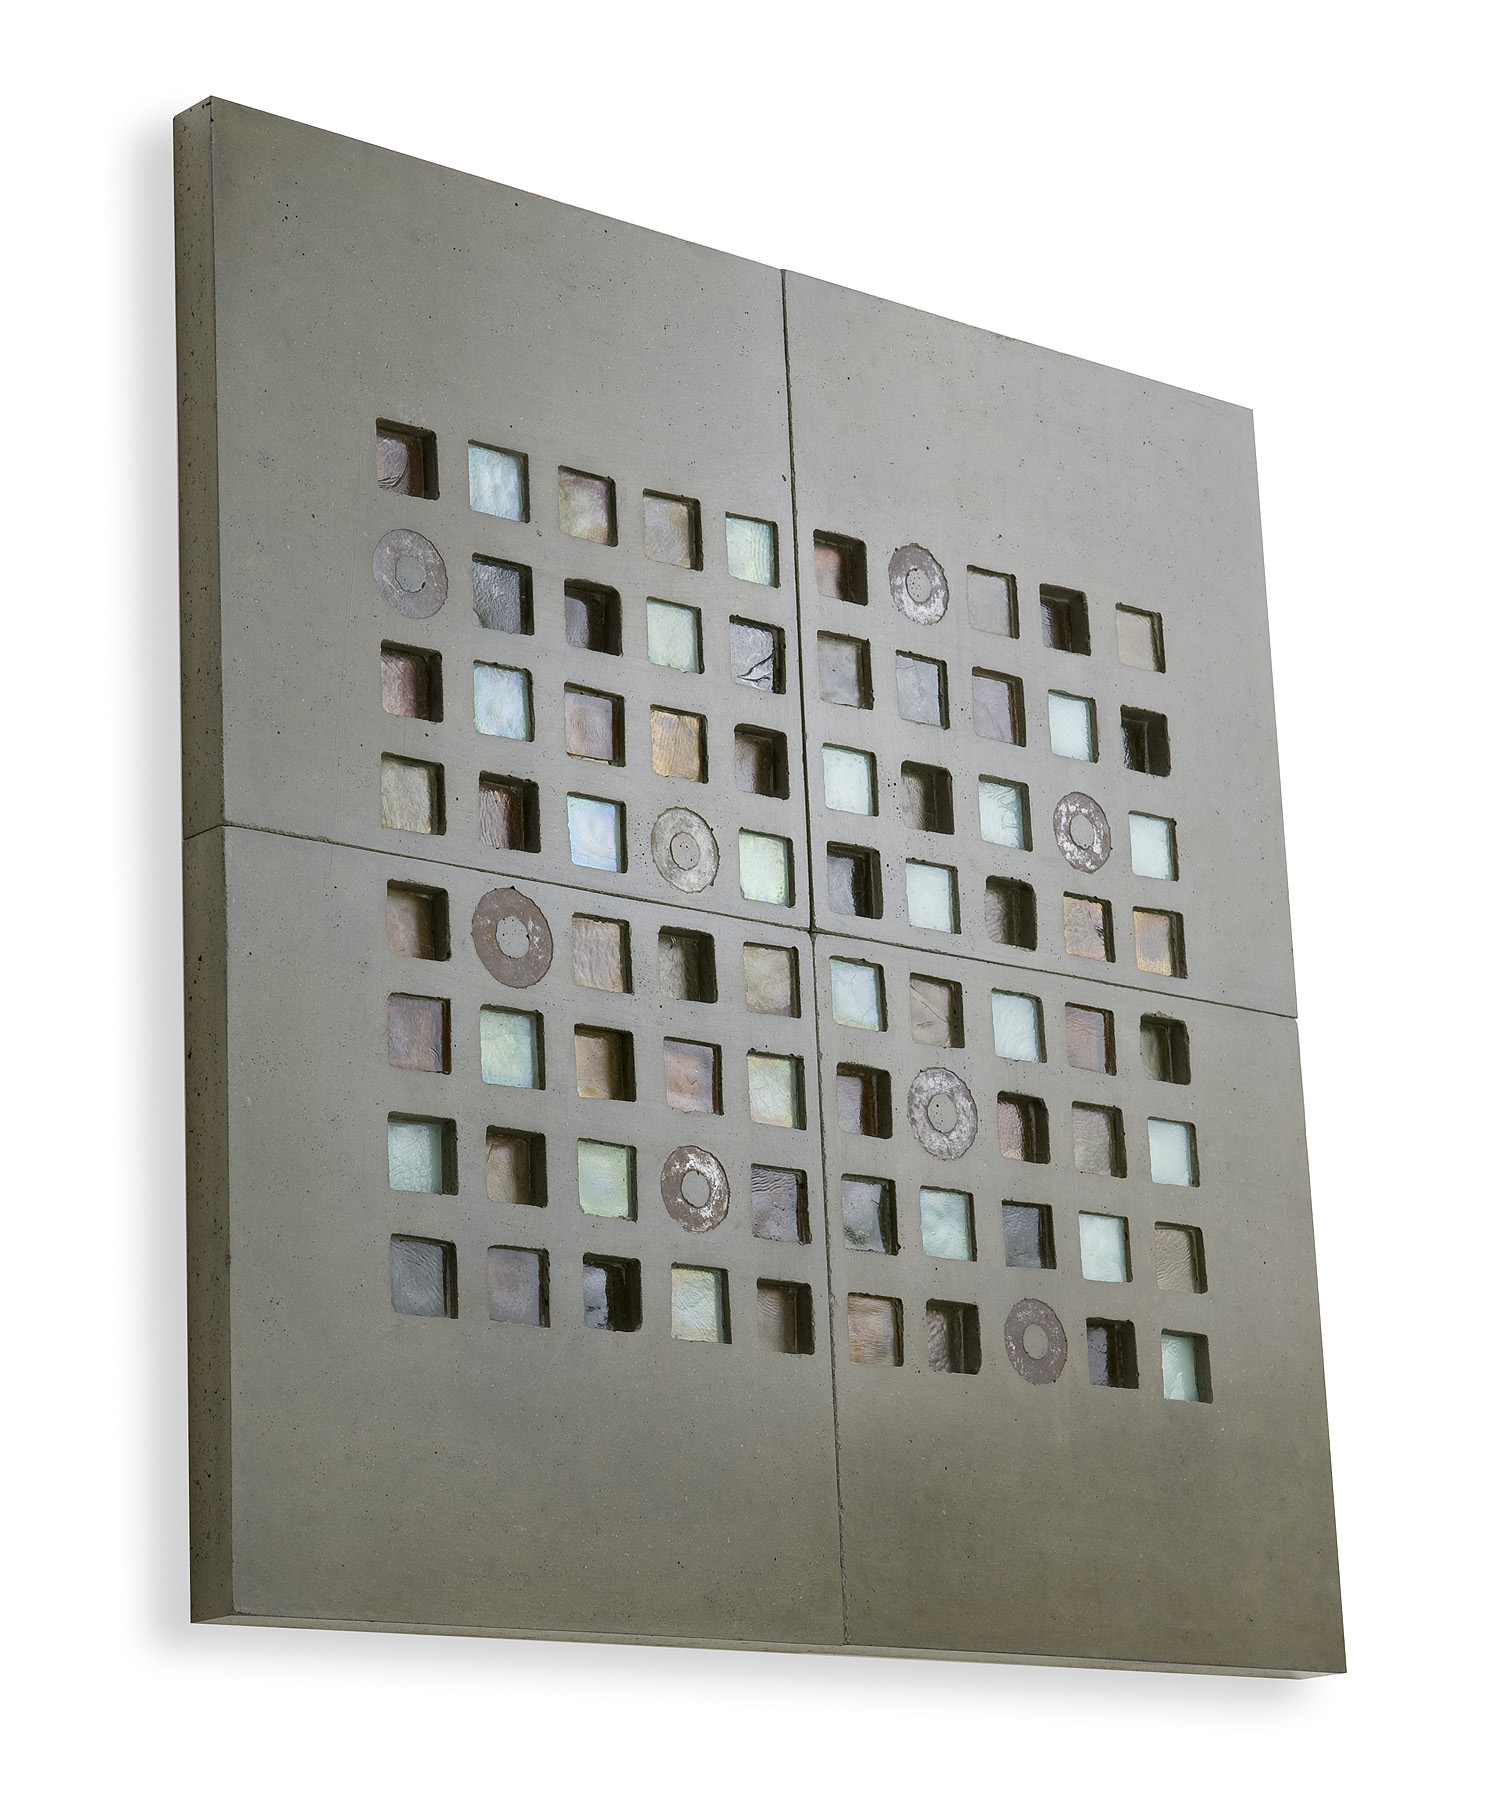 rough edges design will introduce concrete lamps wall art and new